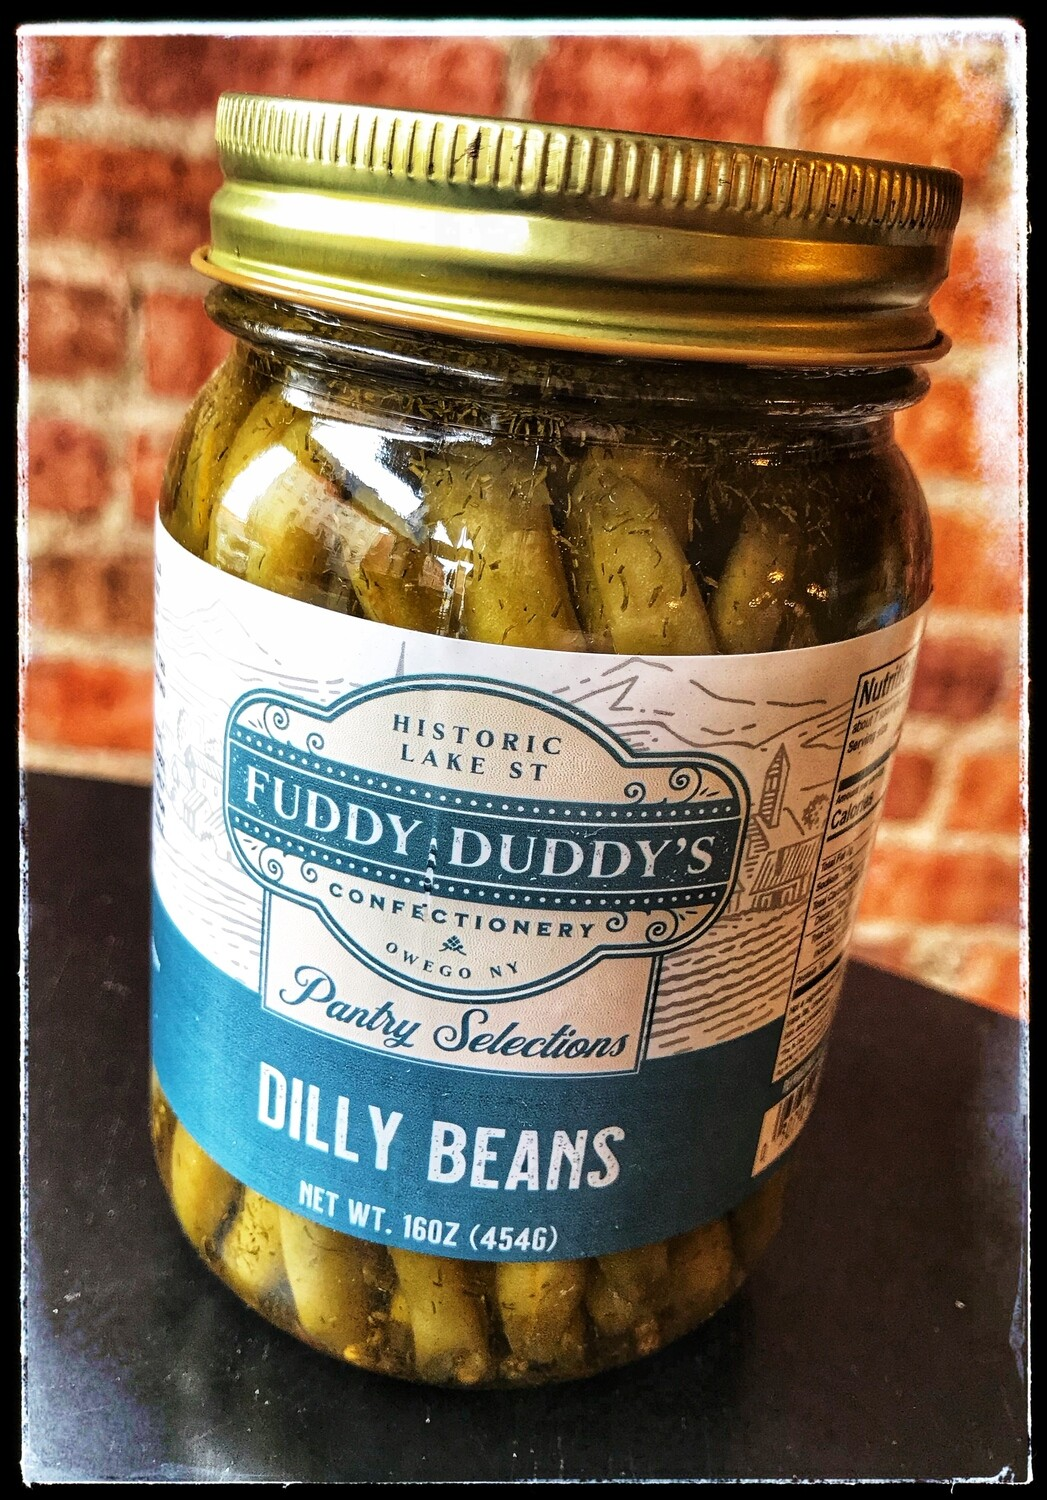 Fuddy Duddy's Dilly Beans